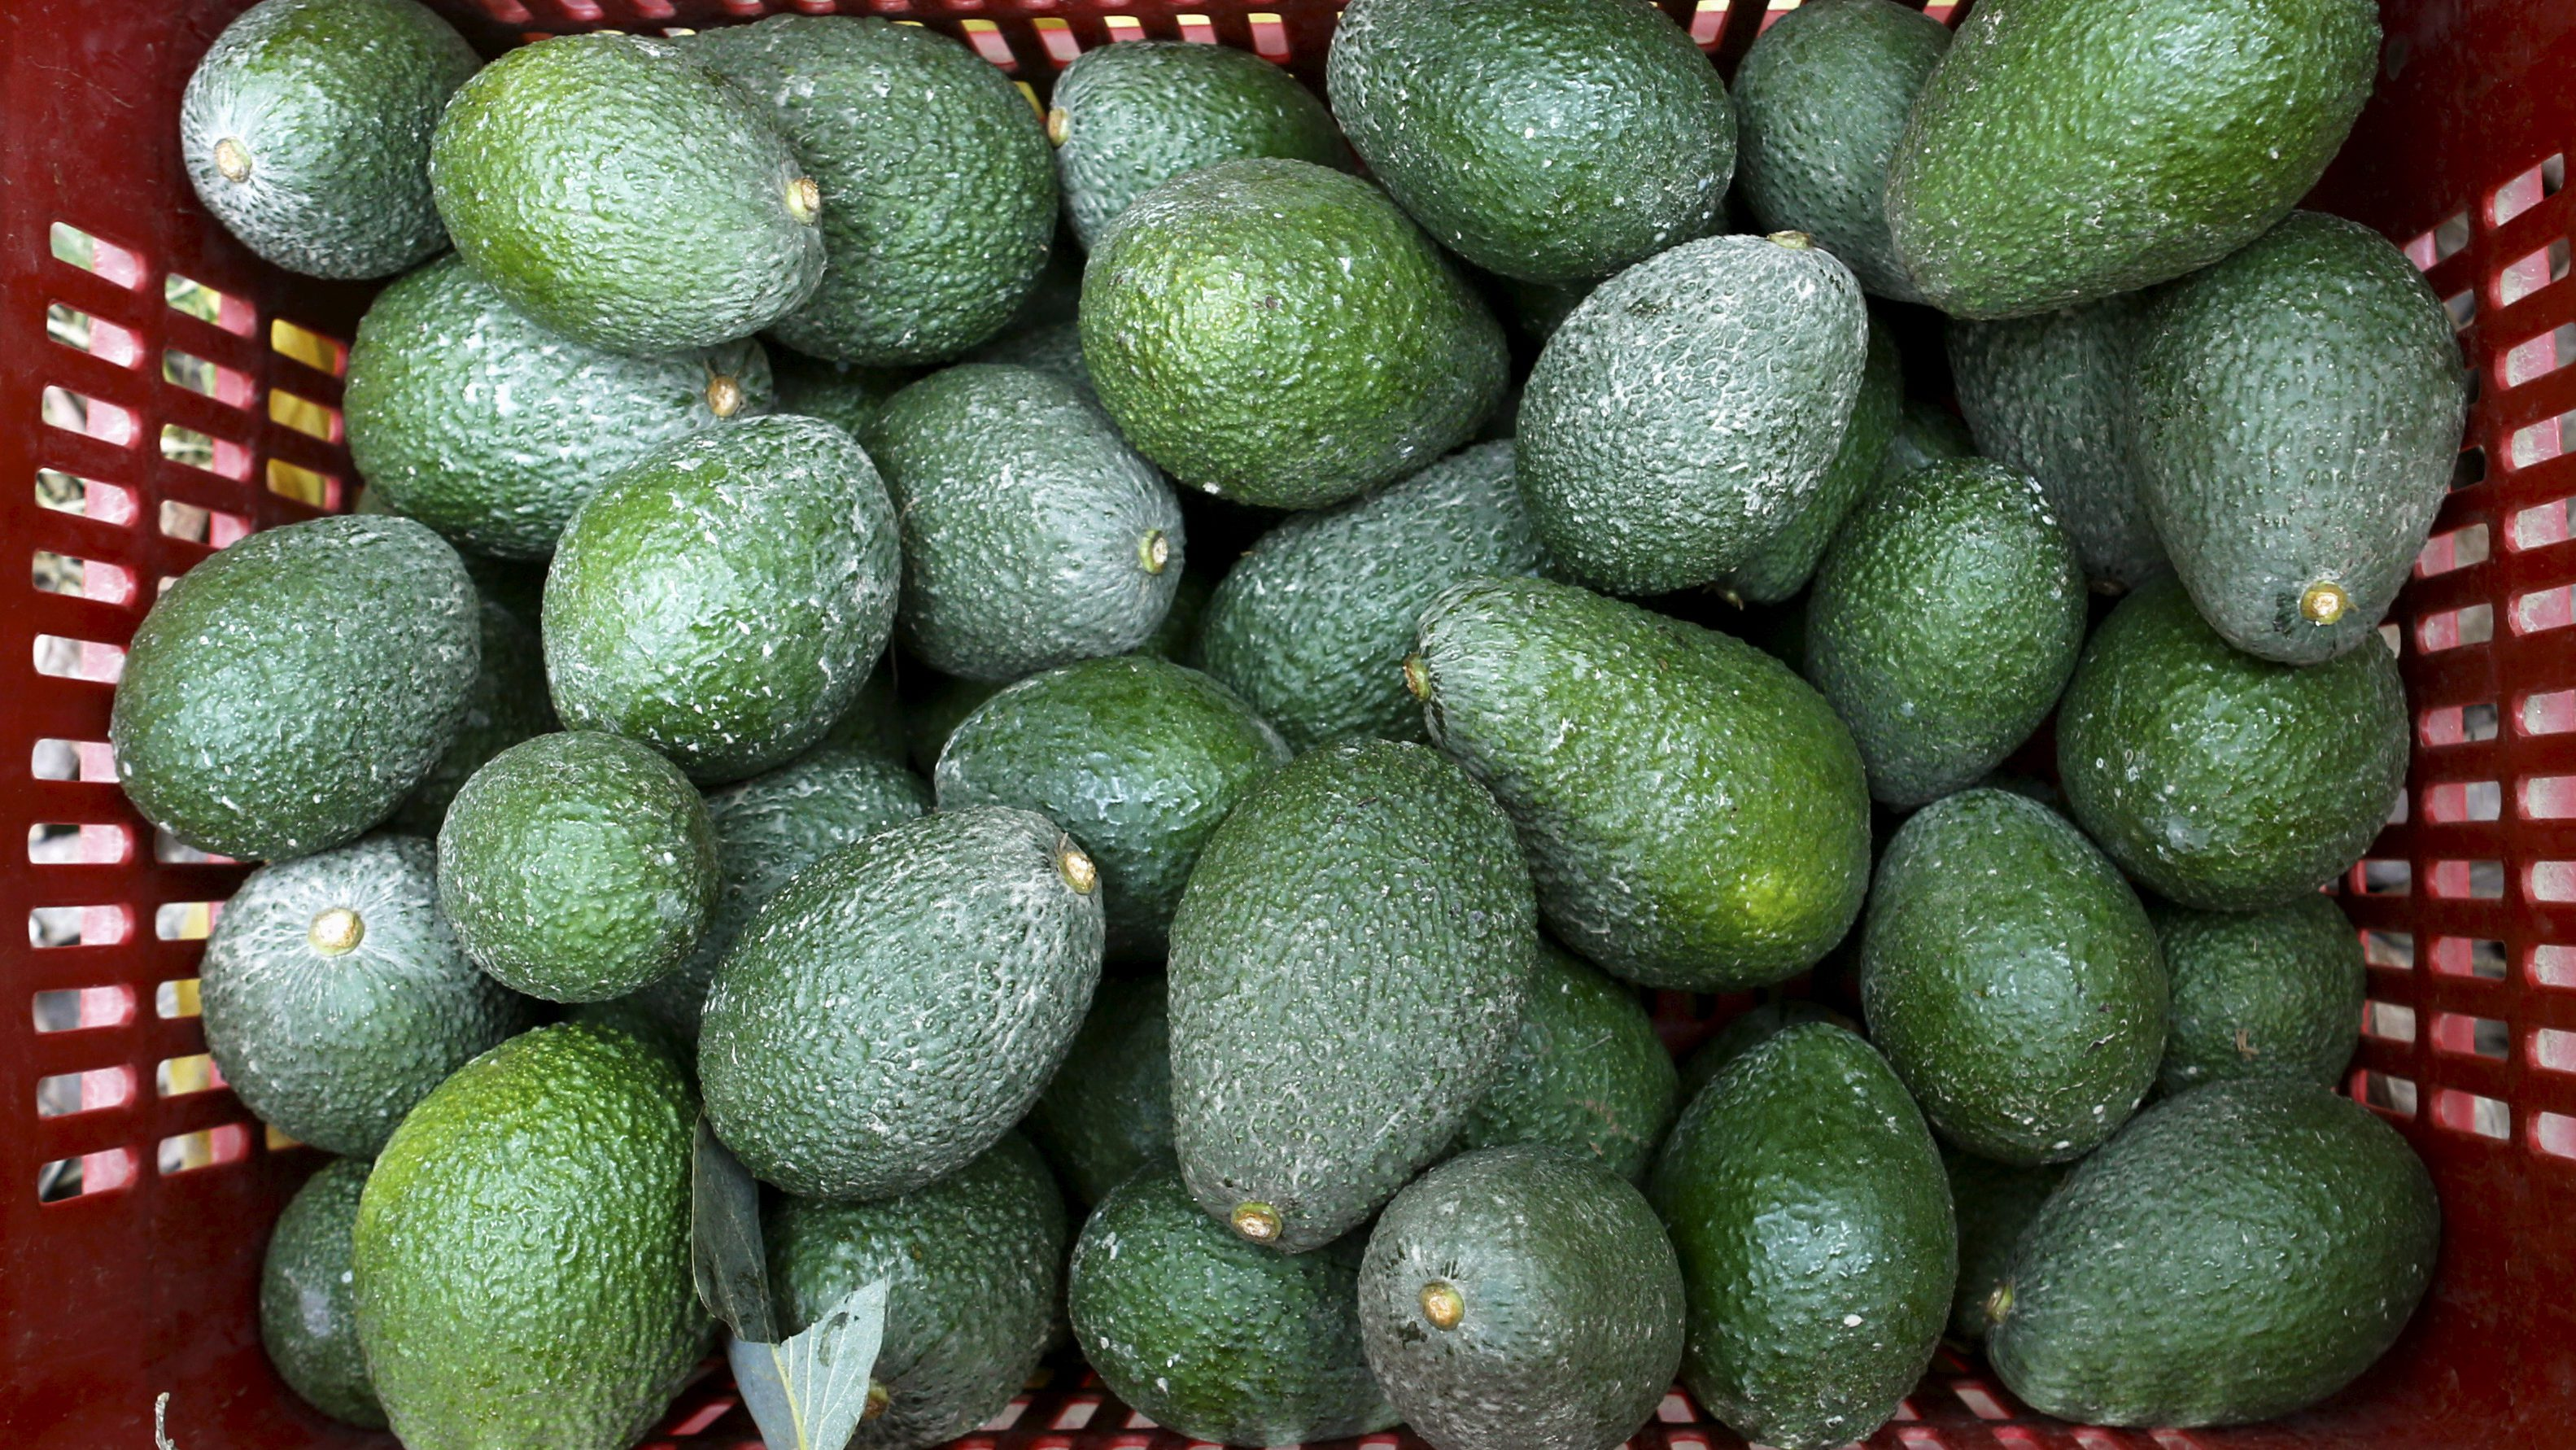 Avocados are seen at a packaging warehouse of Hoja Redonda plantation in Chincha, Peru, September 3, 2015. The eighth World Avocado Congress, an event dedicated to production, export and marketing of Hass avocados, will be held in Peru from September 13 to September 18. Peru is the second largest exporter of Hass avocados in the world, according to local media.